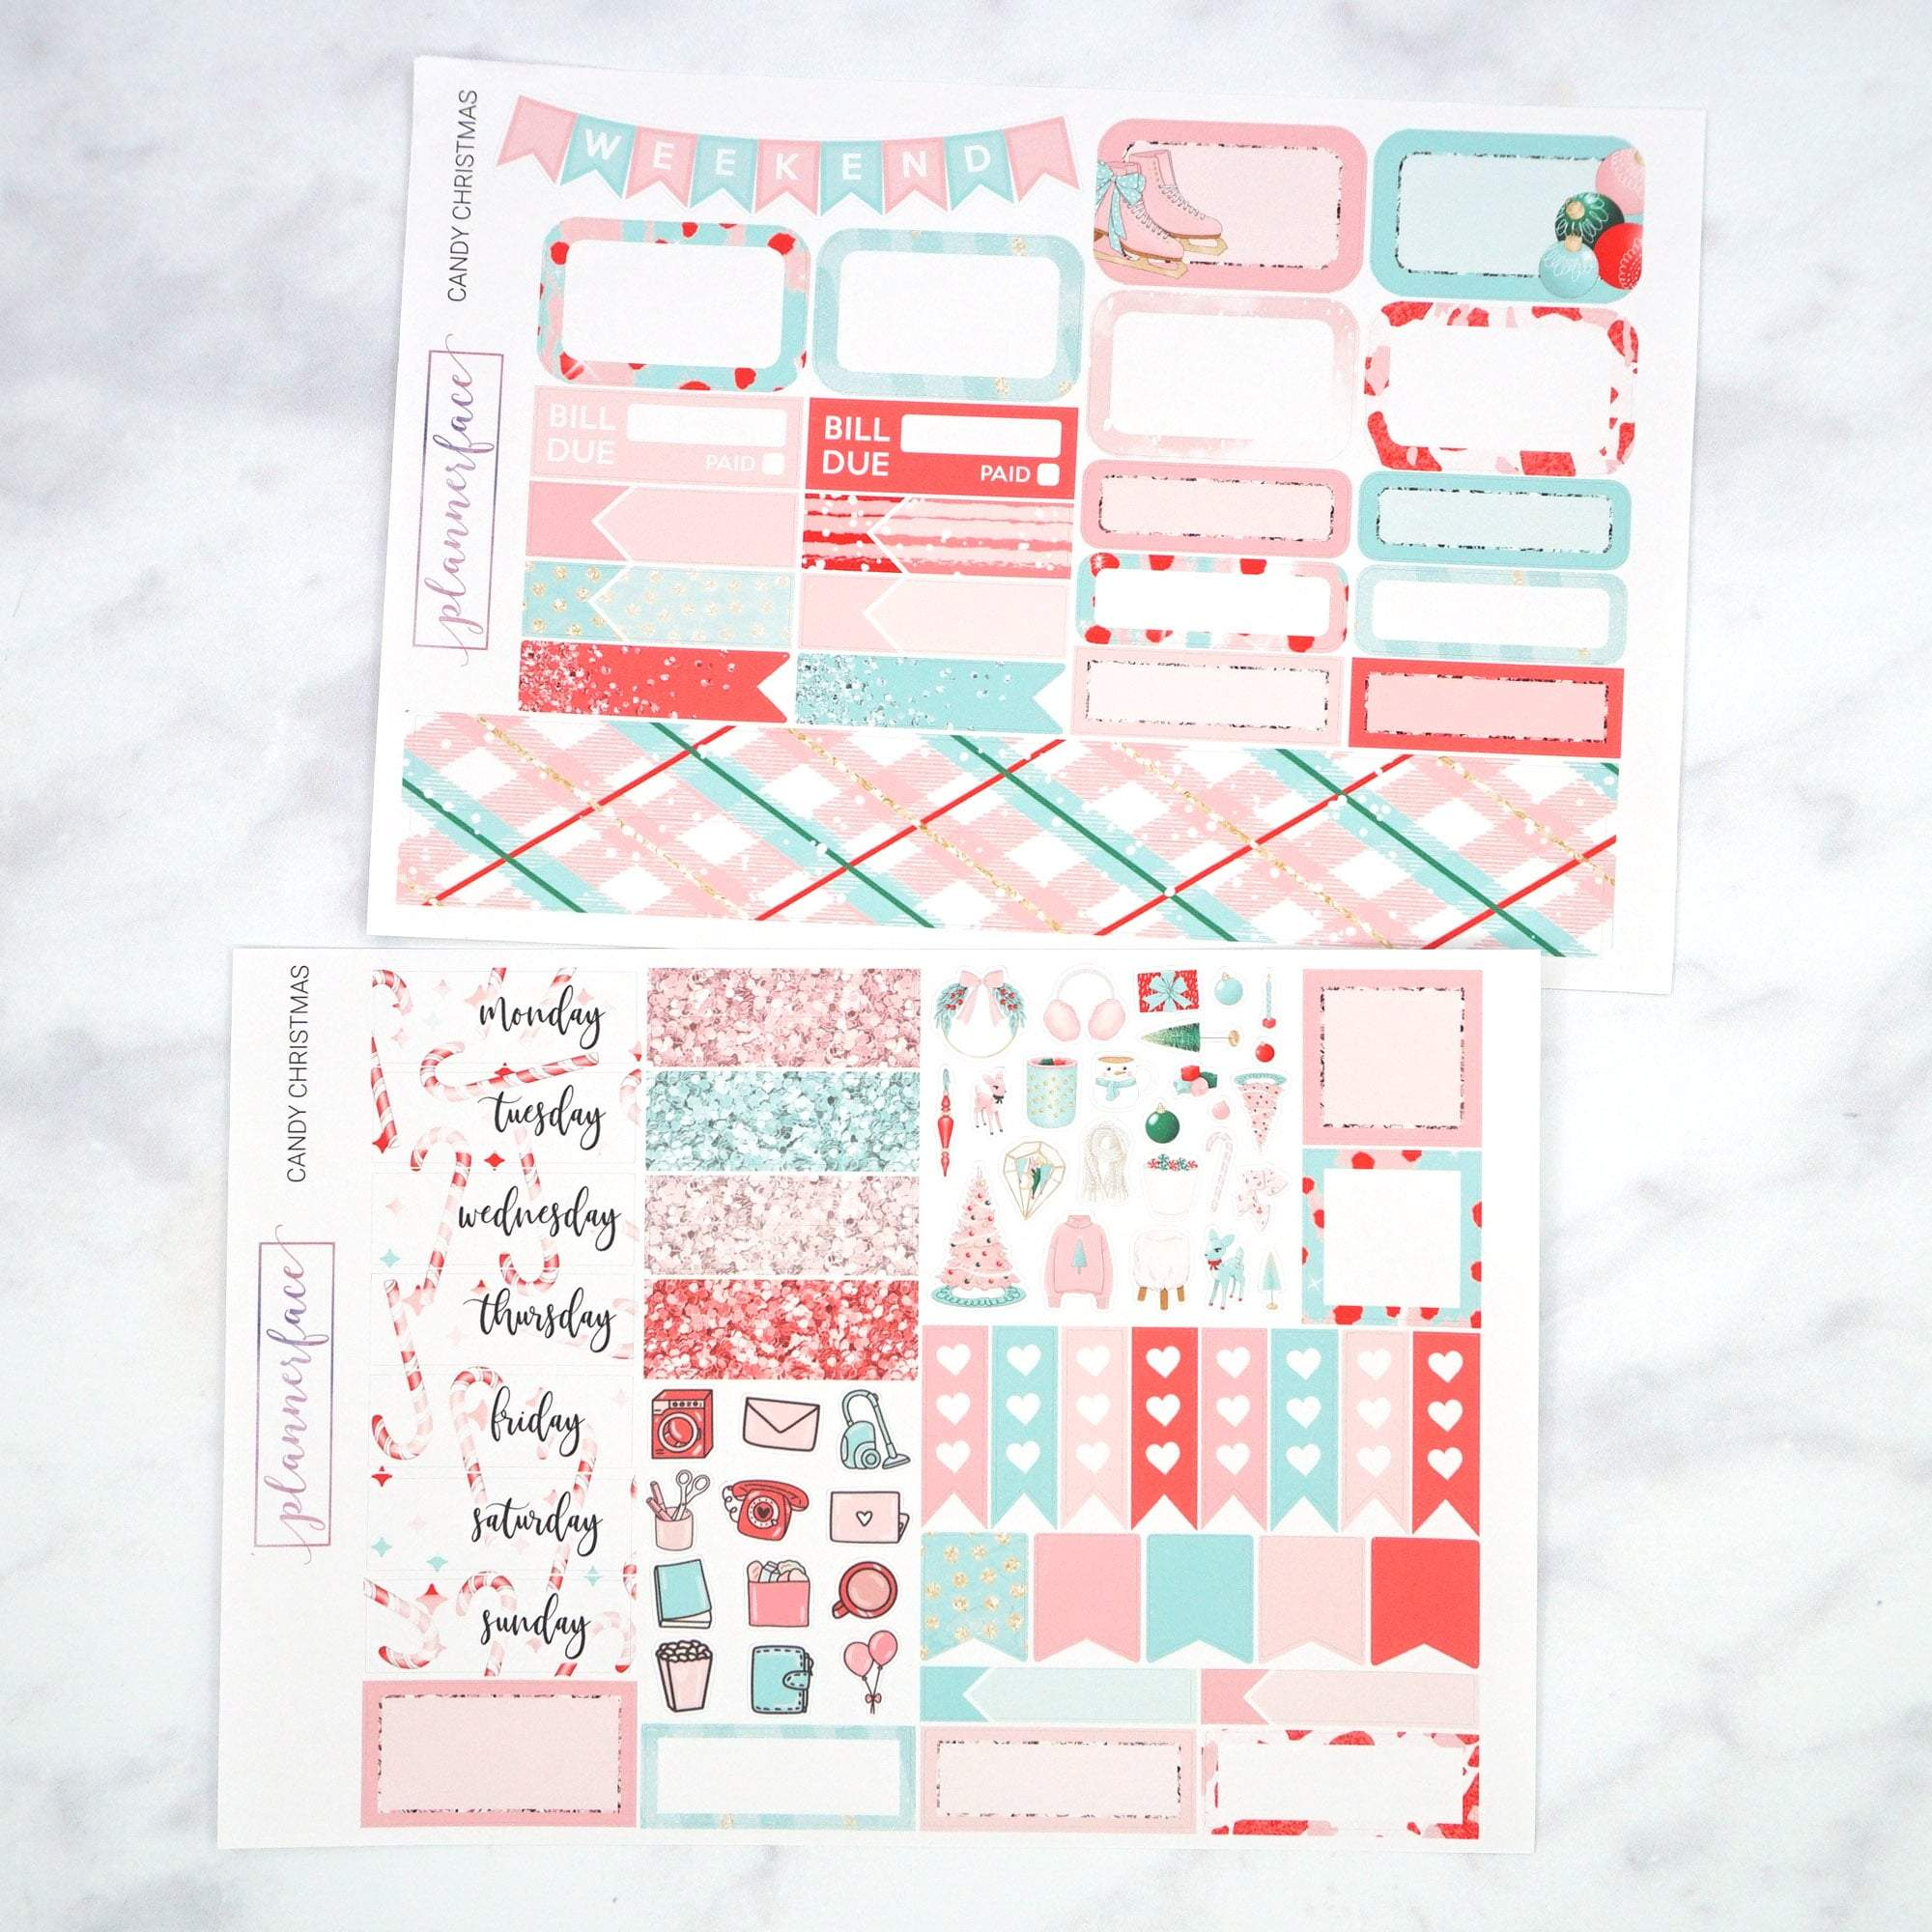 Plannerface Candy Christmas Mini Kit Planner Stickers